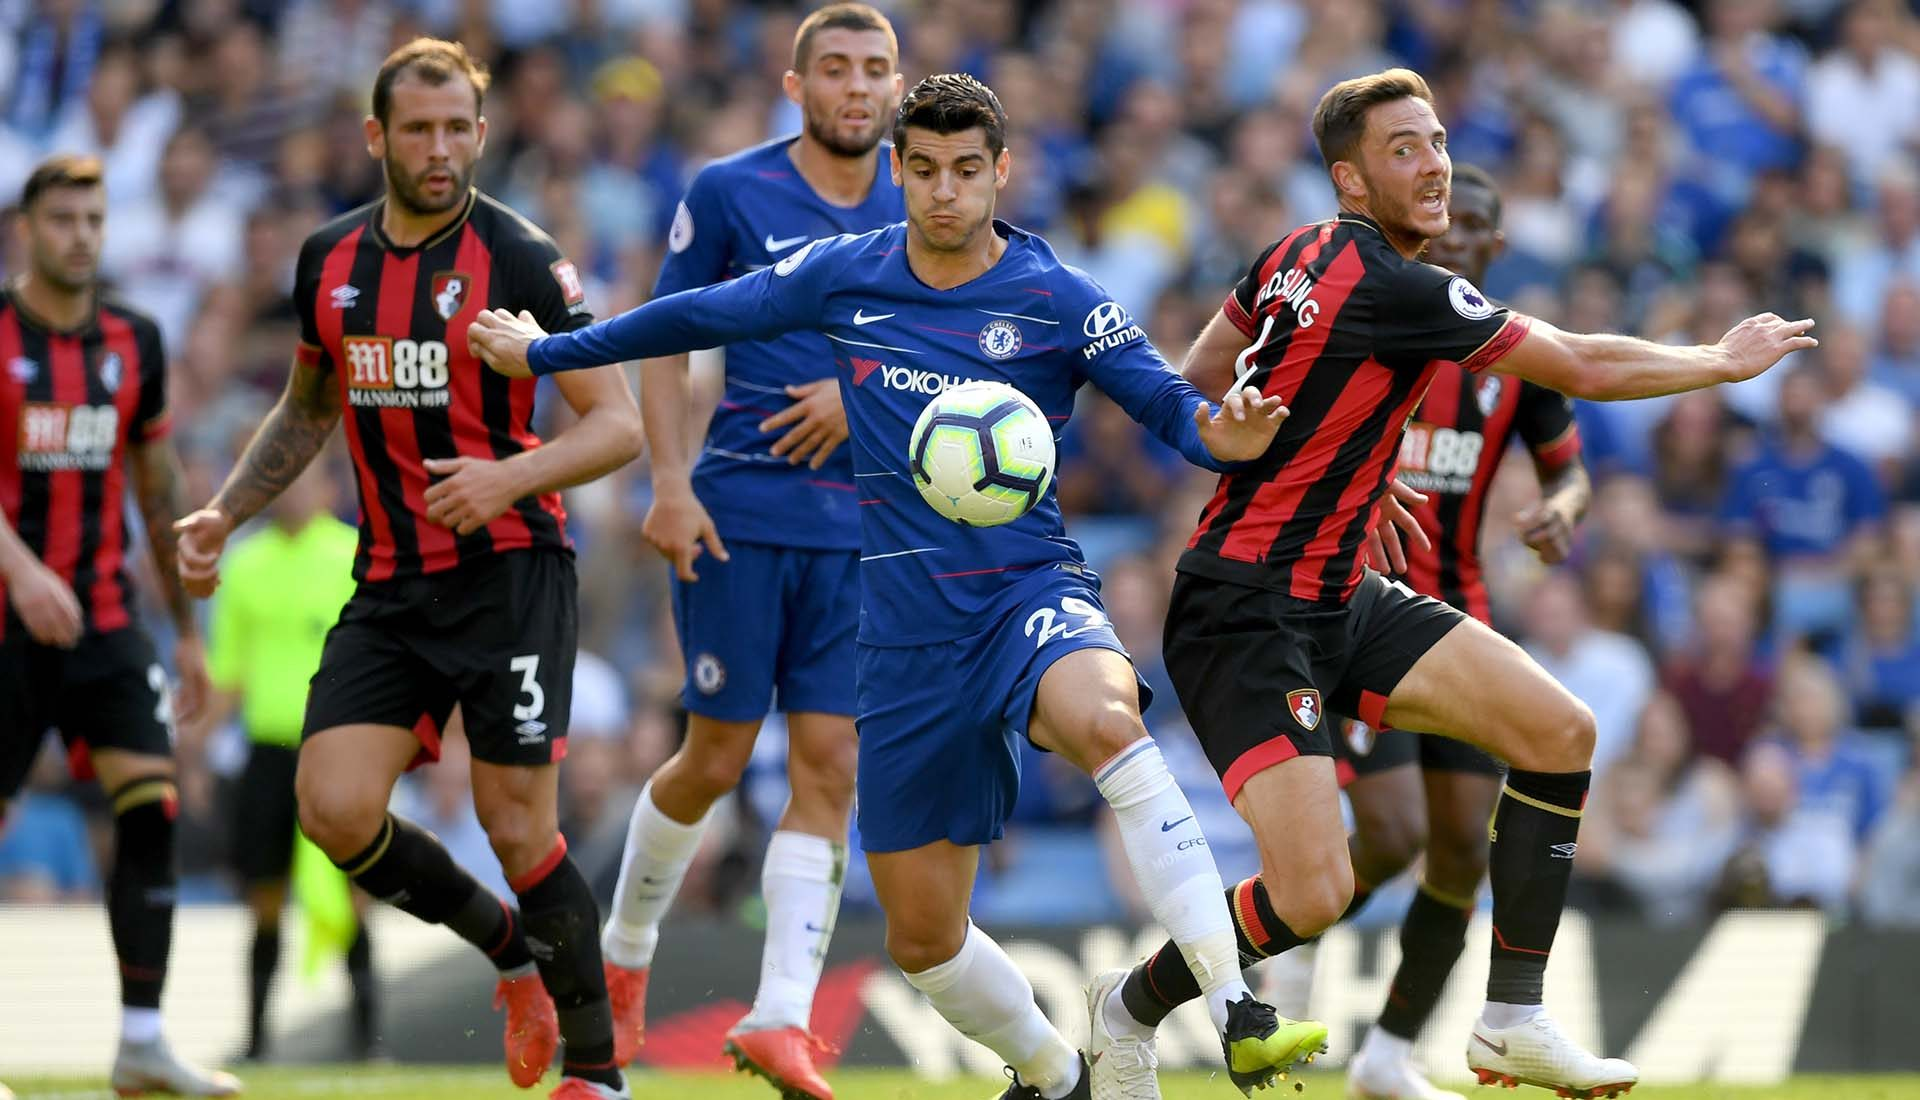 Alvaro Morata holds off Steve Cook and Dan Gosling of AFC Bournemouth during the Premier League match between Chelsea FC and AFC Bournemouth at Stamford Bridge on September 1, 2018 in London.